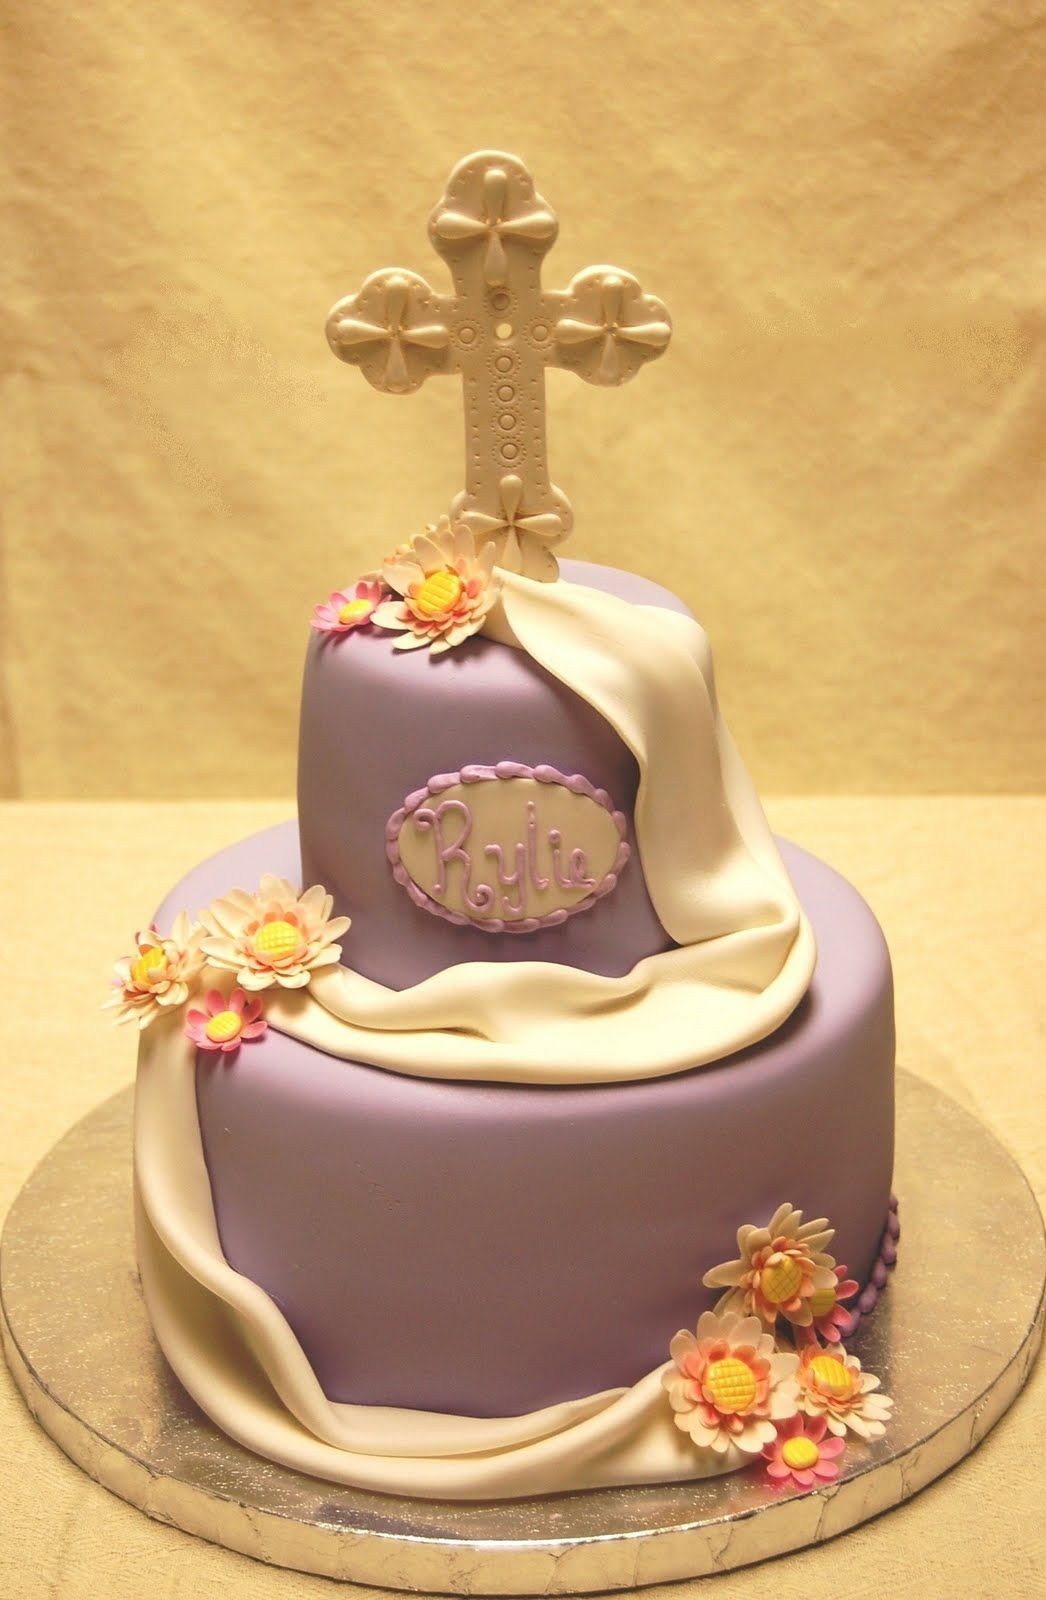 Catholic confirmation cakes first communion cakes decoration ideas communion - Holy communion cake decorations ...